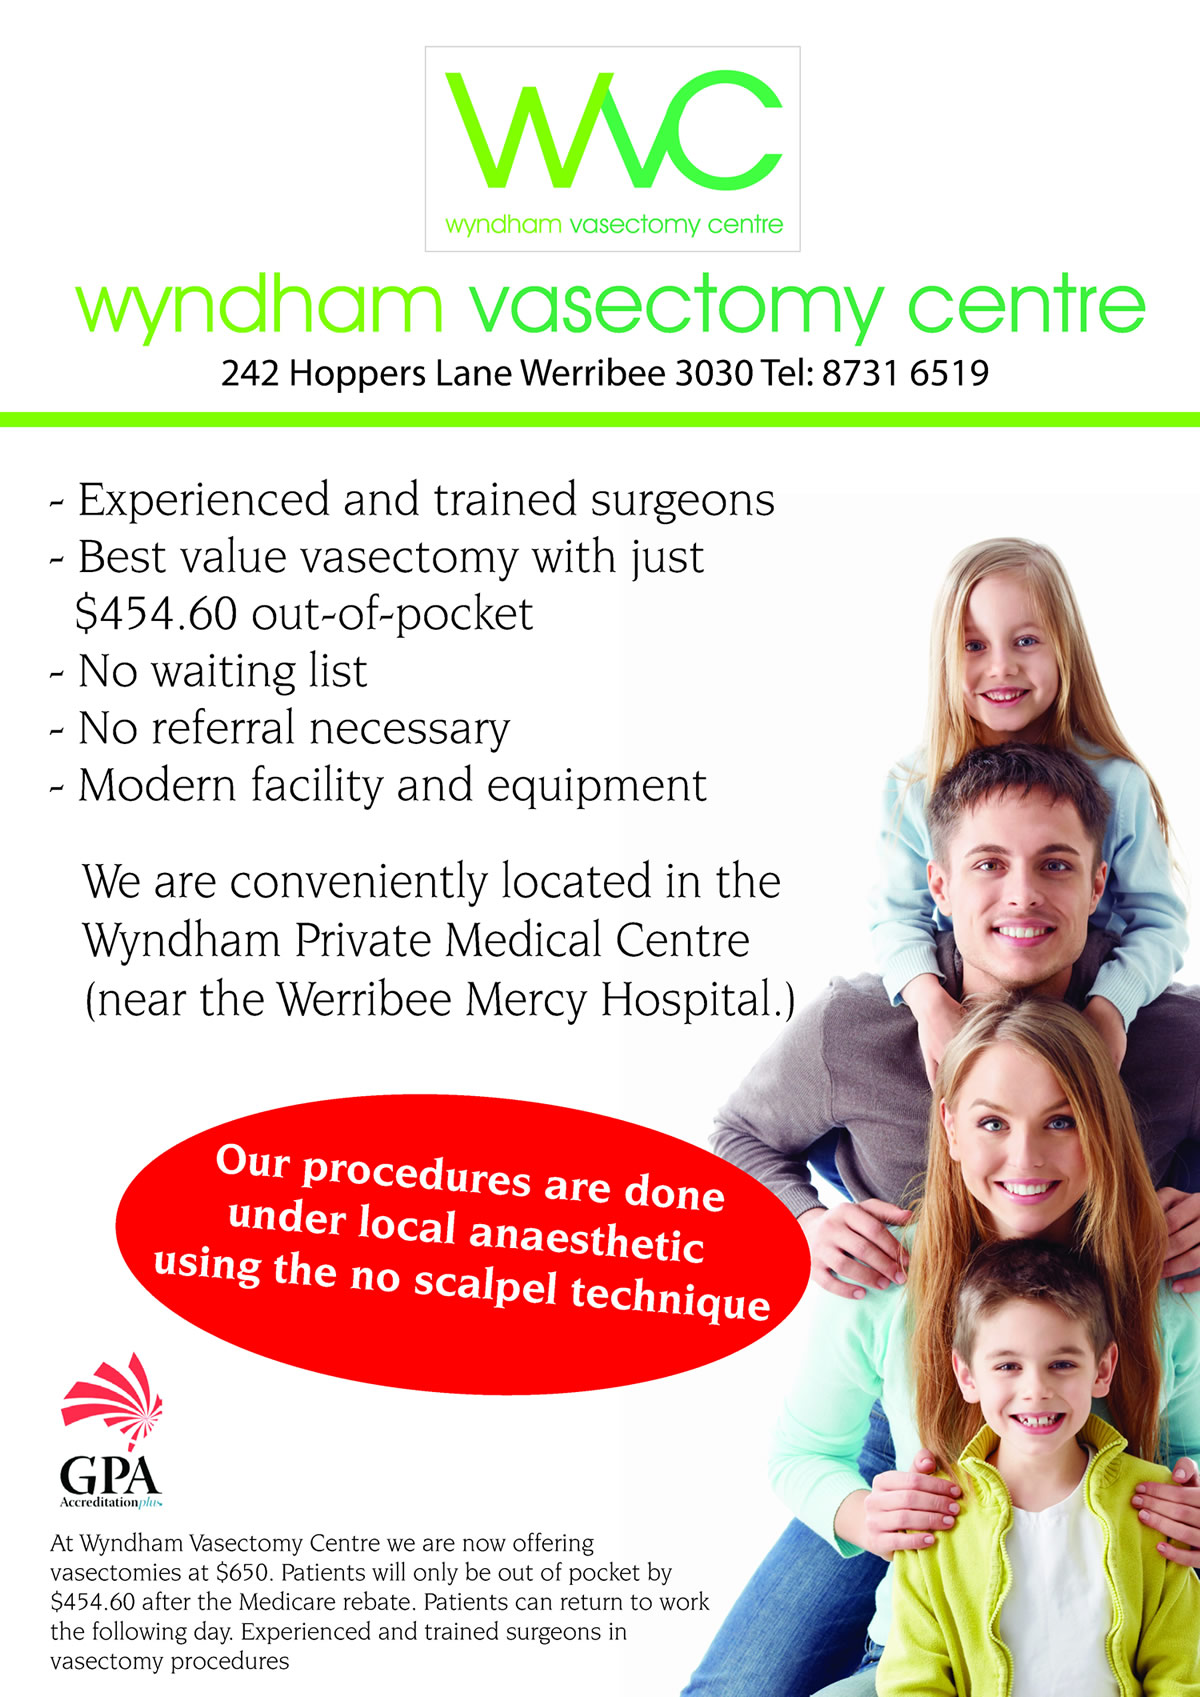 wyndham vasectomy centre